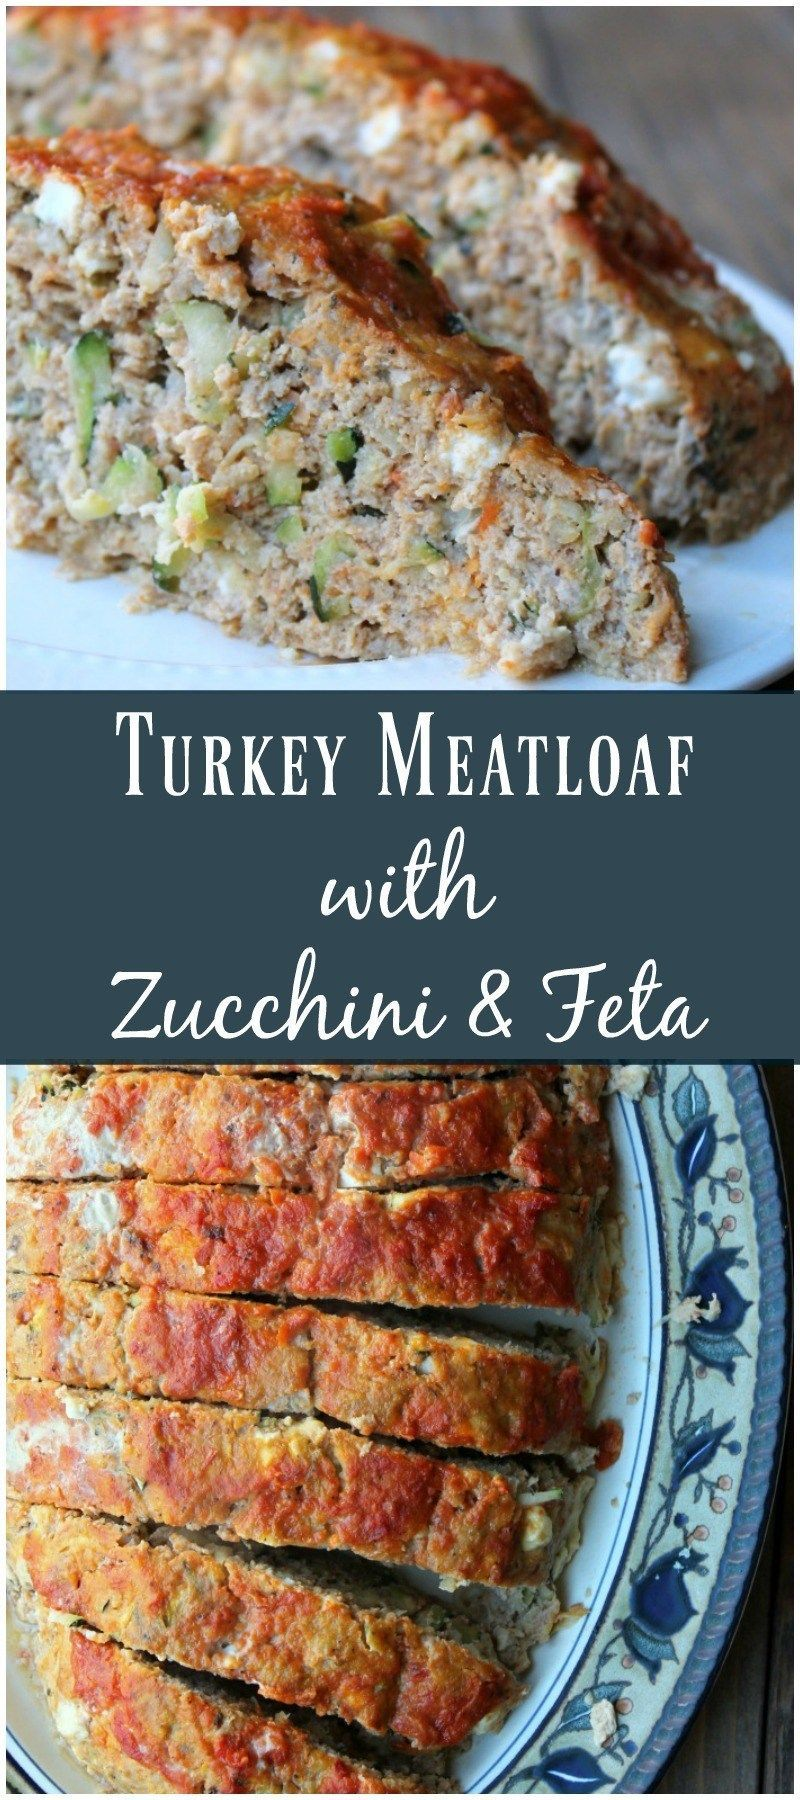 Turkey Meatloaf with Zucchini and Feta Healthy recipes to make with zucchini delicious low carb zucchini recipe makeahead and perfect for meal prep Can also be frozen int...